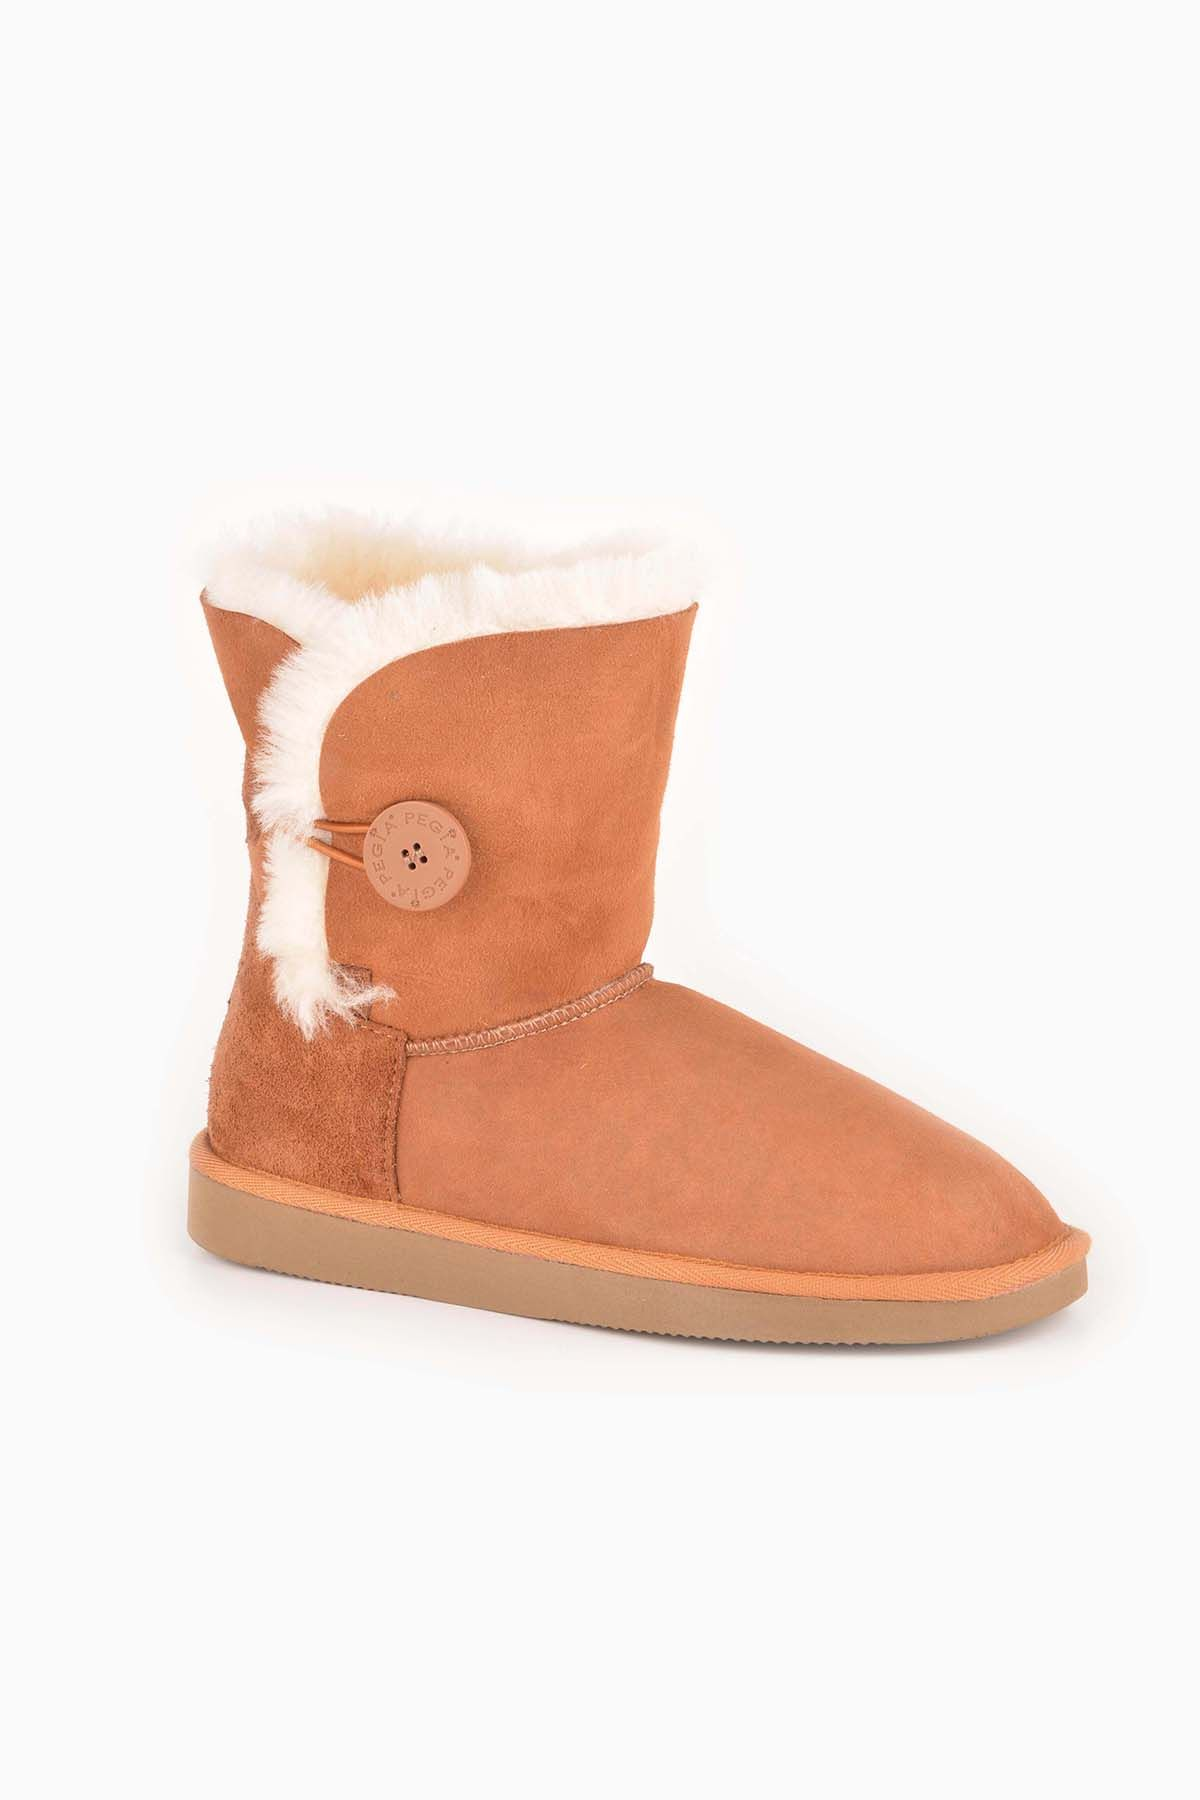 Pegia Women Boots From Genuine Suede And Sheepskin Fur Decorated With Snap Ginger